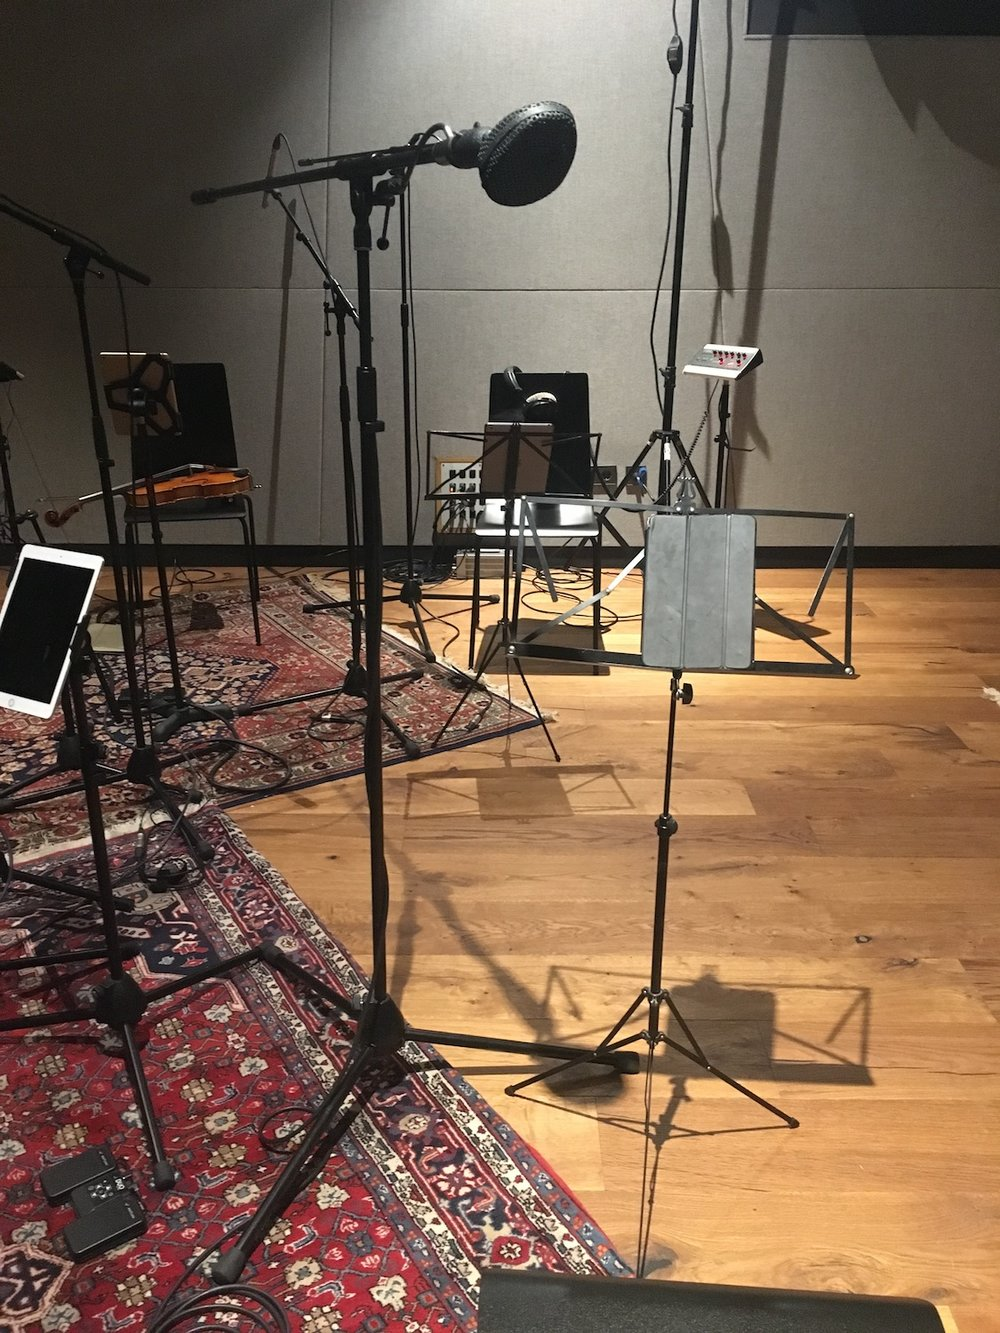 Yung-Nnelg-Red-Bull-Studios-uncut-coles-4038-ribbon-microphone-The-Wong-Janice.jpg